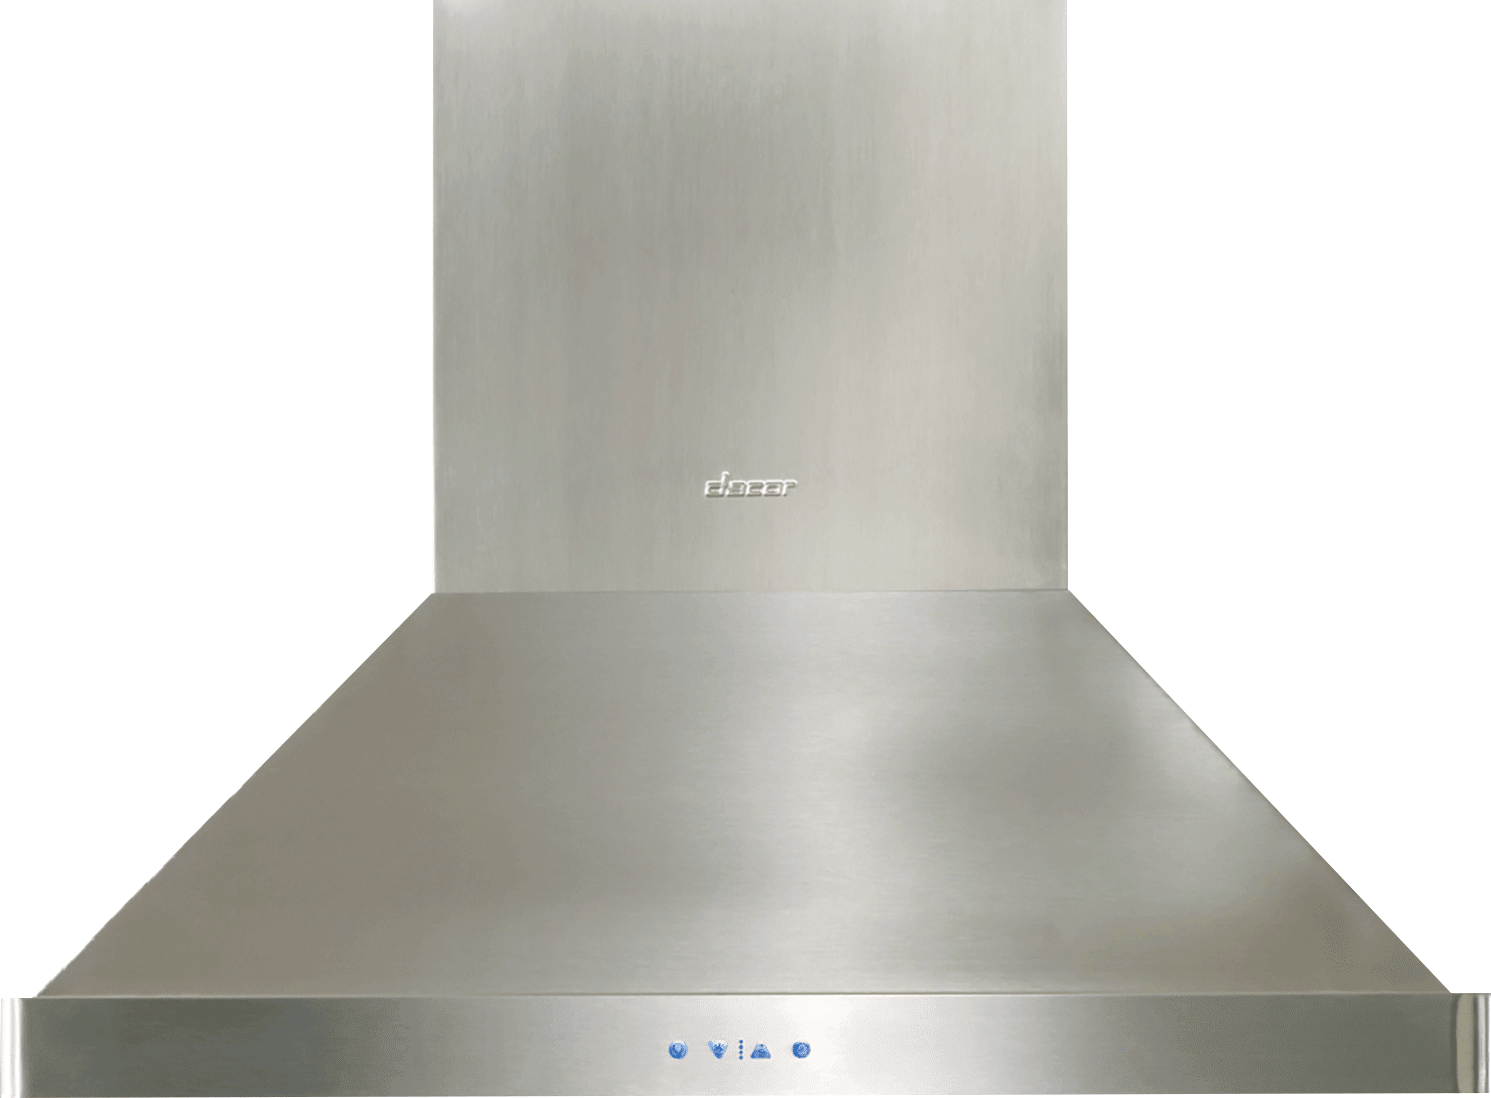 Dacor dhi482 48 inch island mount range hood with 1200 cfm for Dacor 48 rangetop